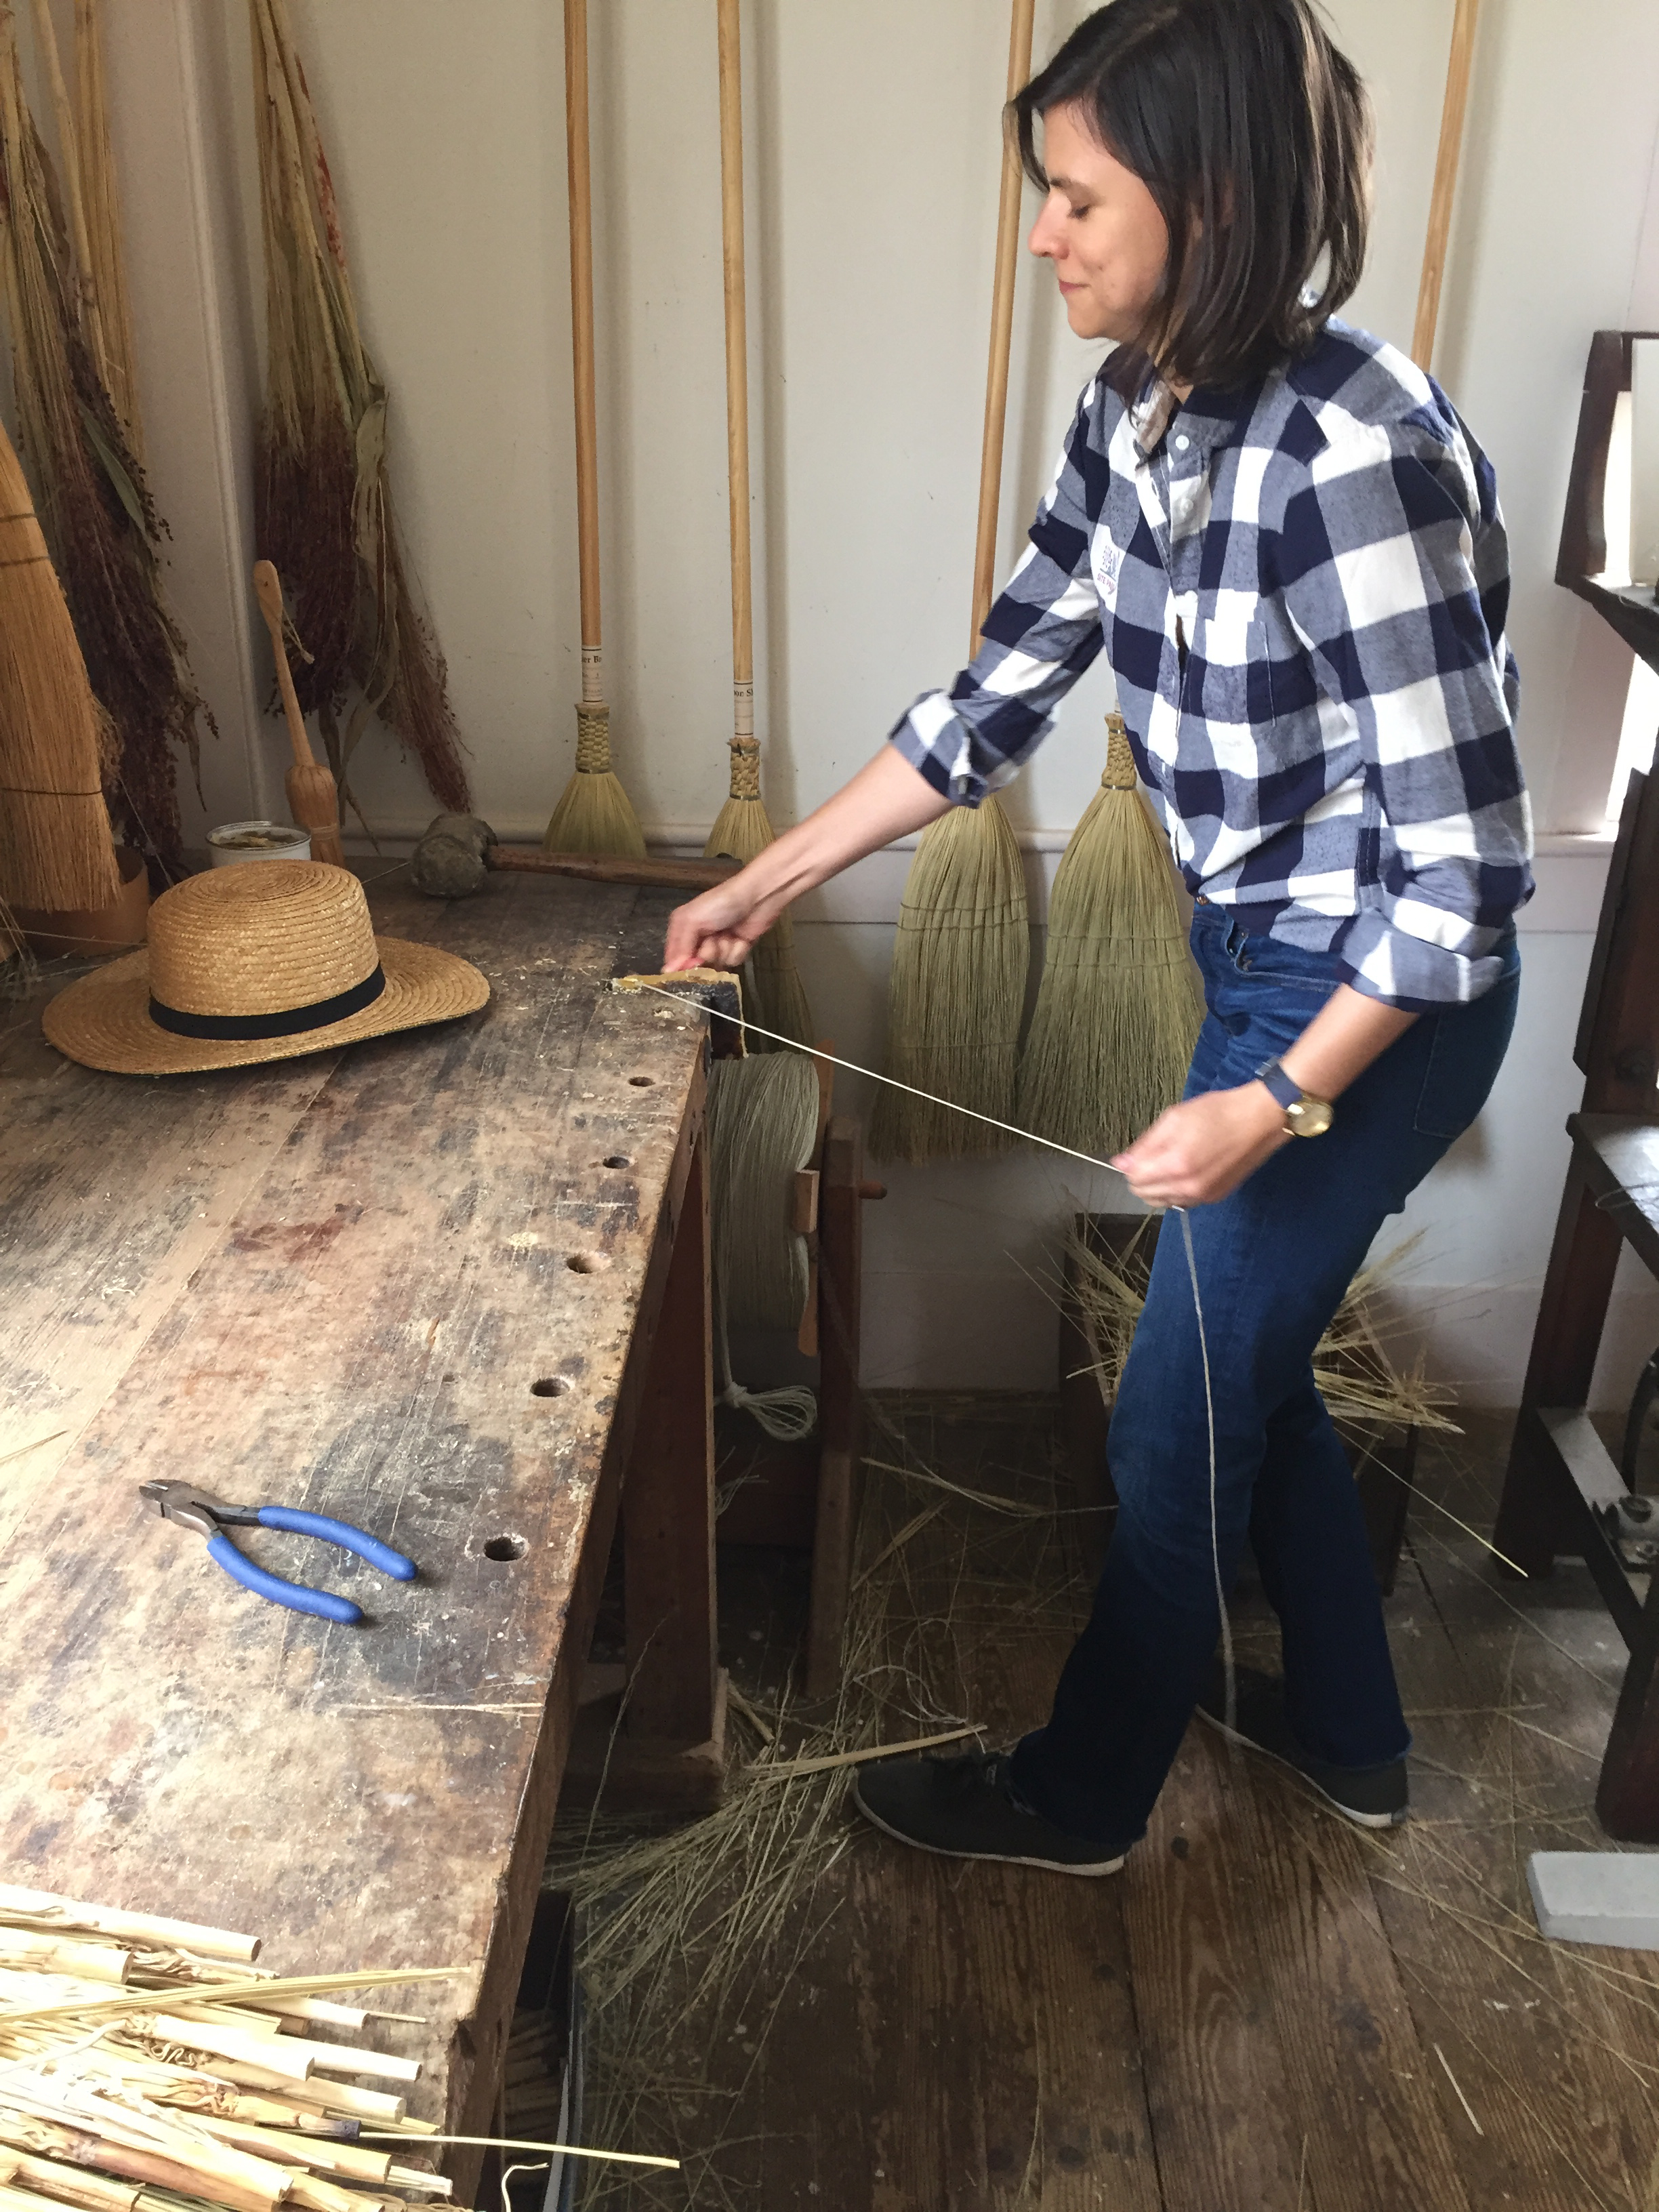 Artisan Erin Rouse handweaves high-quality brooms in her Brooklyn studio.